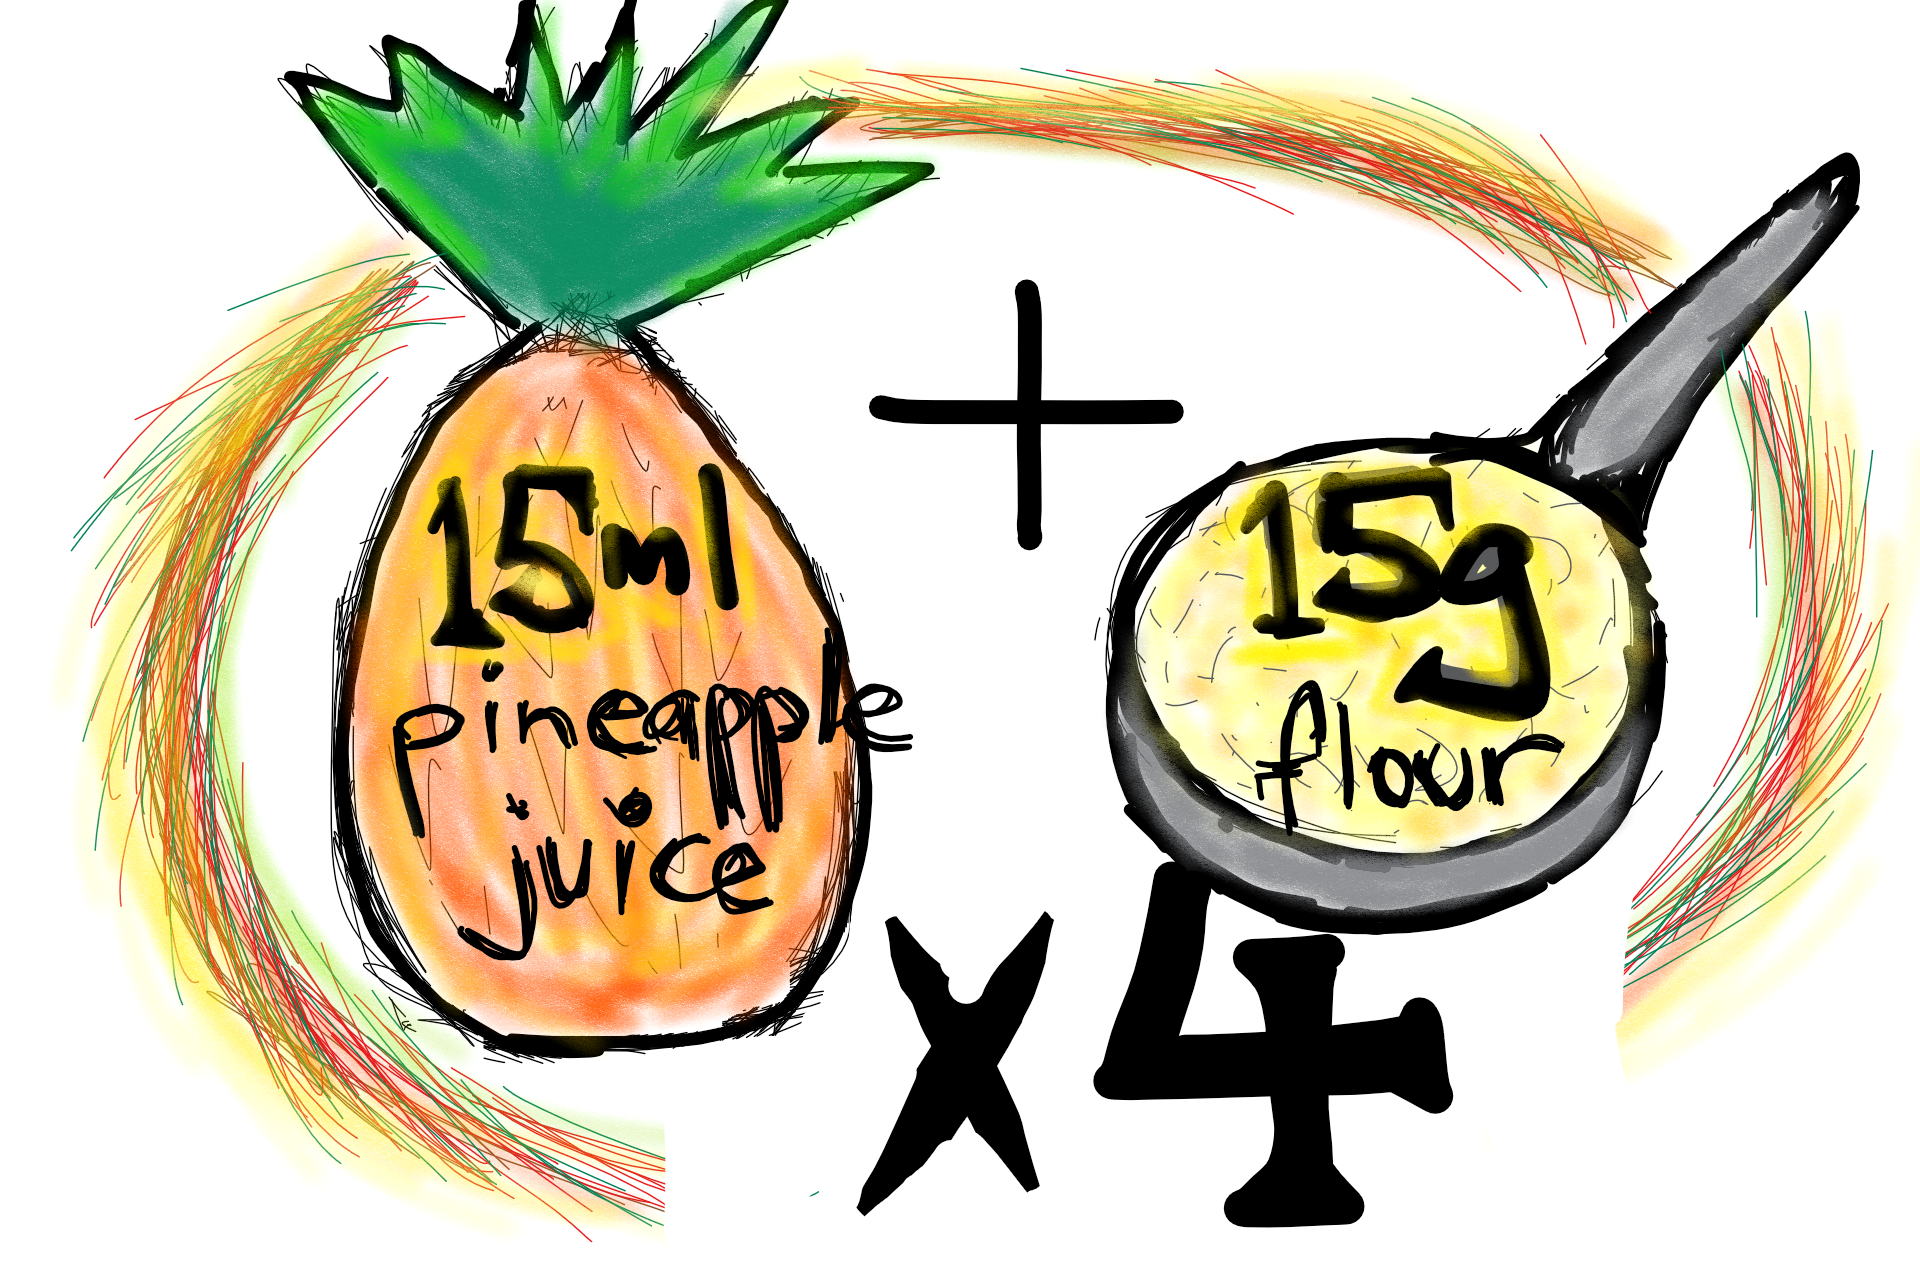 Day 7 - Add four spoons of wholegrain flour and four tablespoons of pineapple juice and stir in to the mixture.Allow to rest until bubbly (possibly another day or two. Your starter is now built.